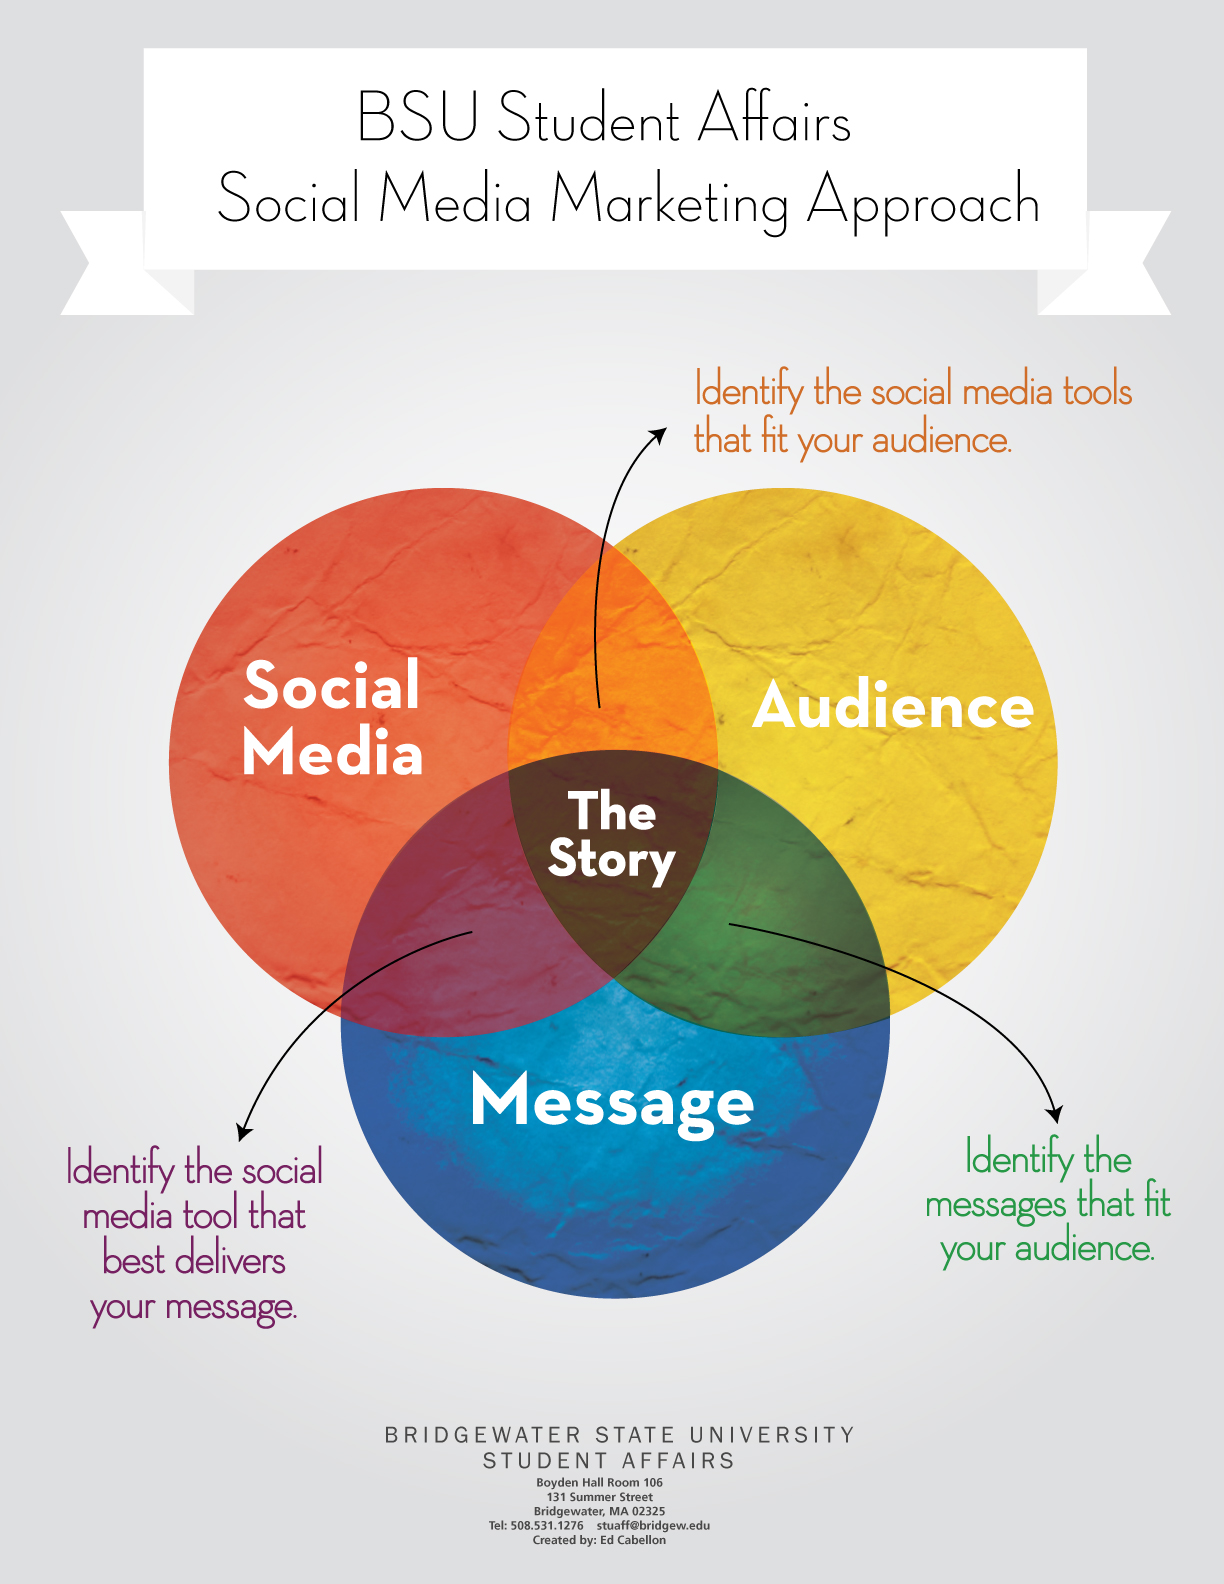 social media approach as a marketing tool media essay Name instructor course date social media marketing tools part 1 the concept of using social media for marketing is gaining popularity the three most well known social networking sites used for this purpose are facebook, twitter, and linkedin.